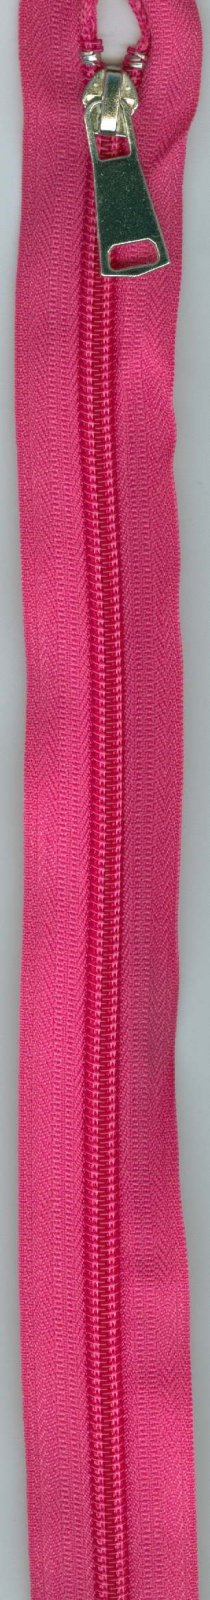 24 Separating Zipper #5 - Hot Pink with Silver Pull